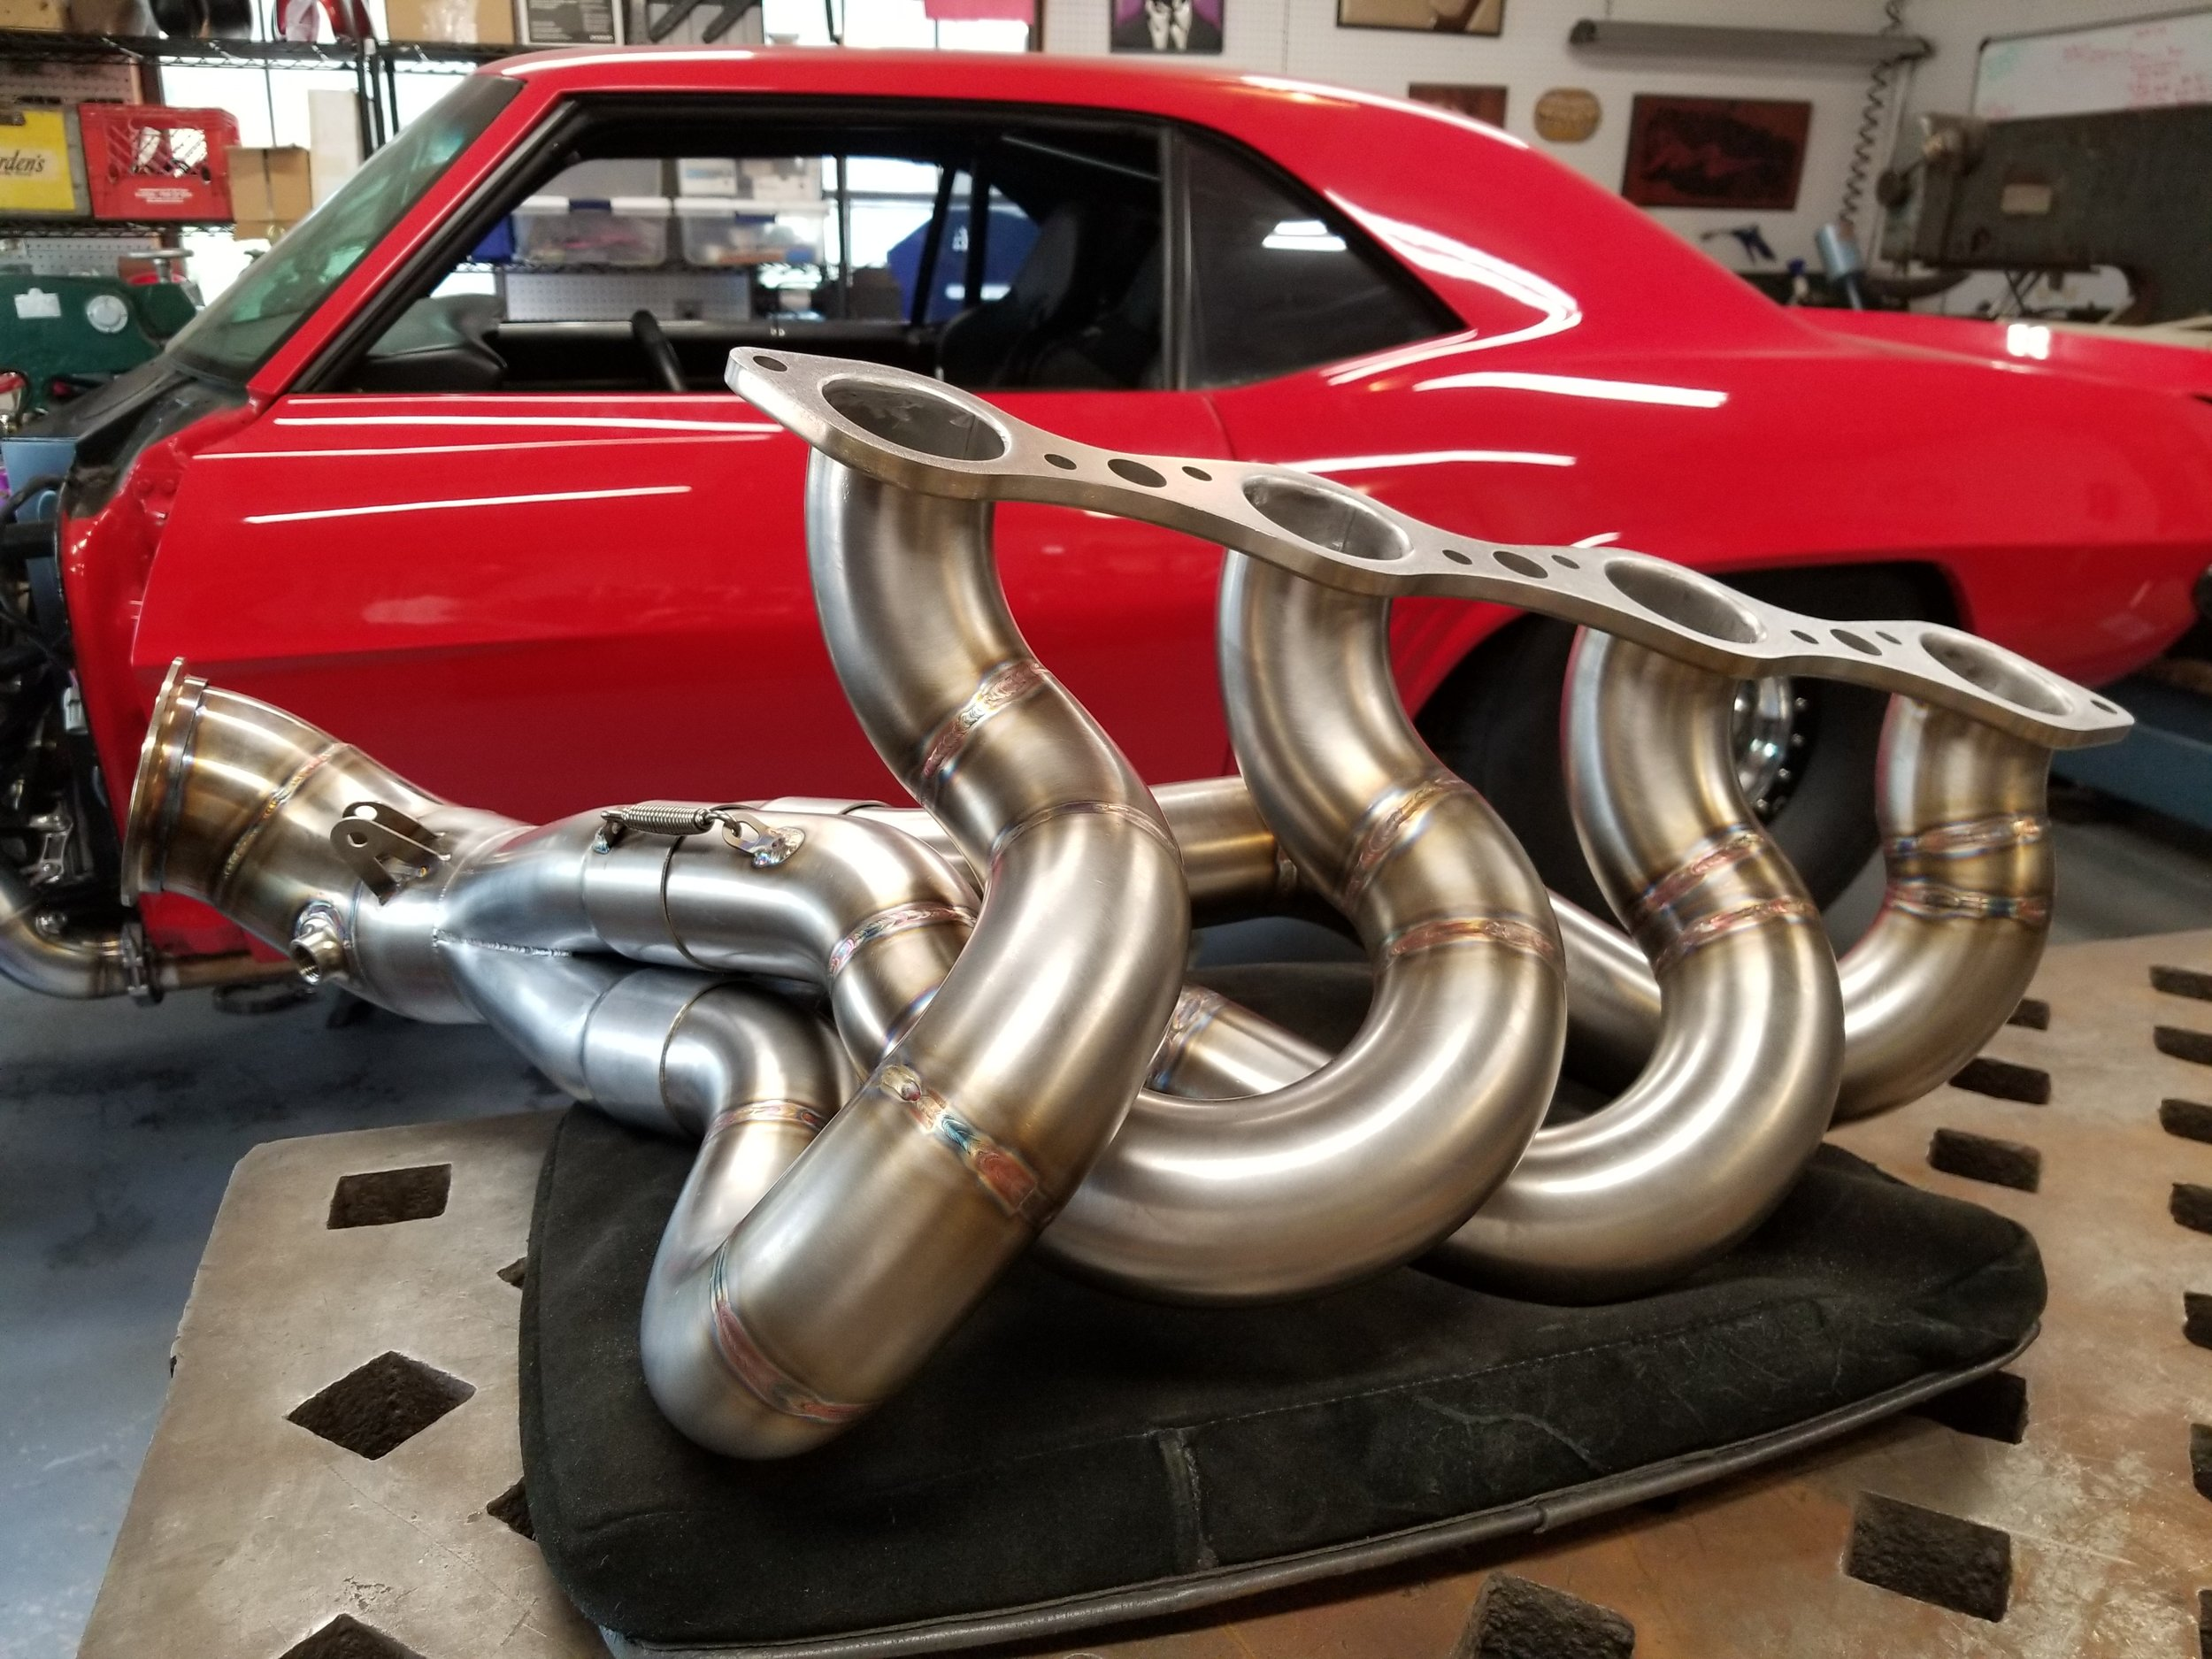 4-into-1 Exhaust